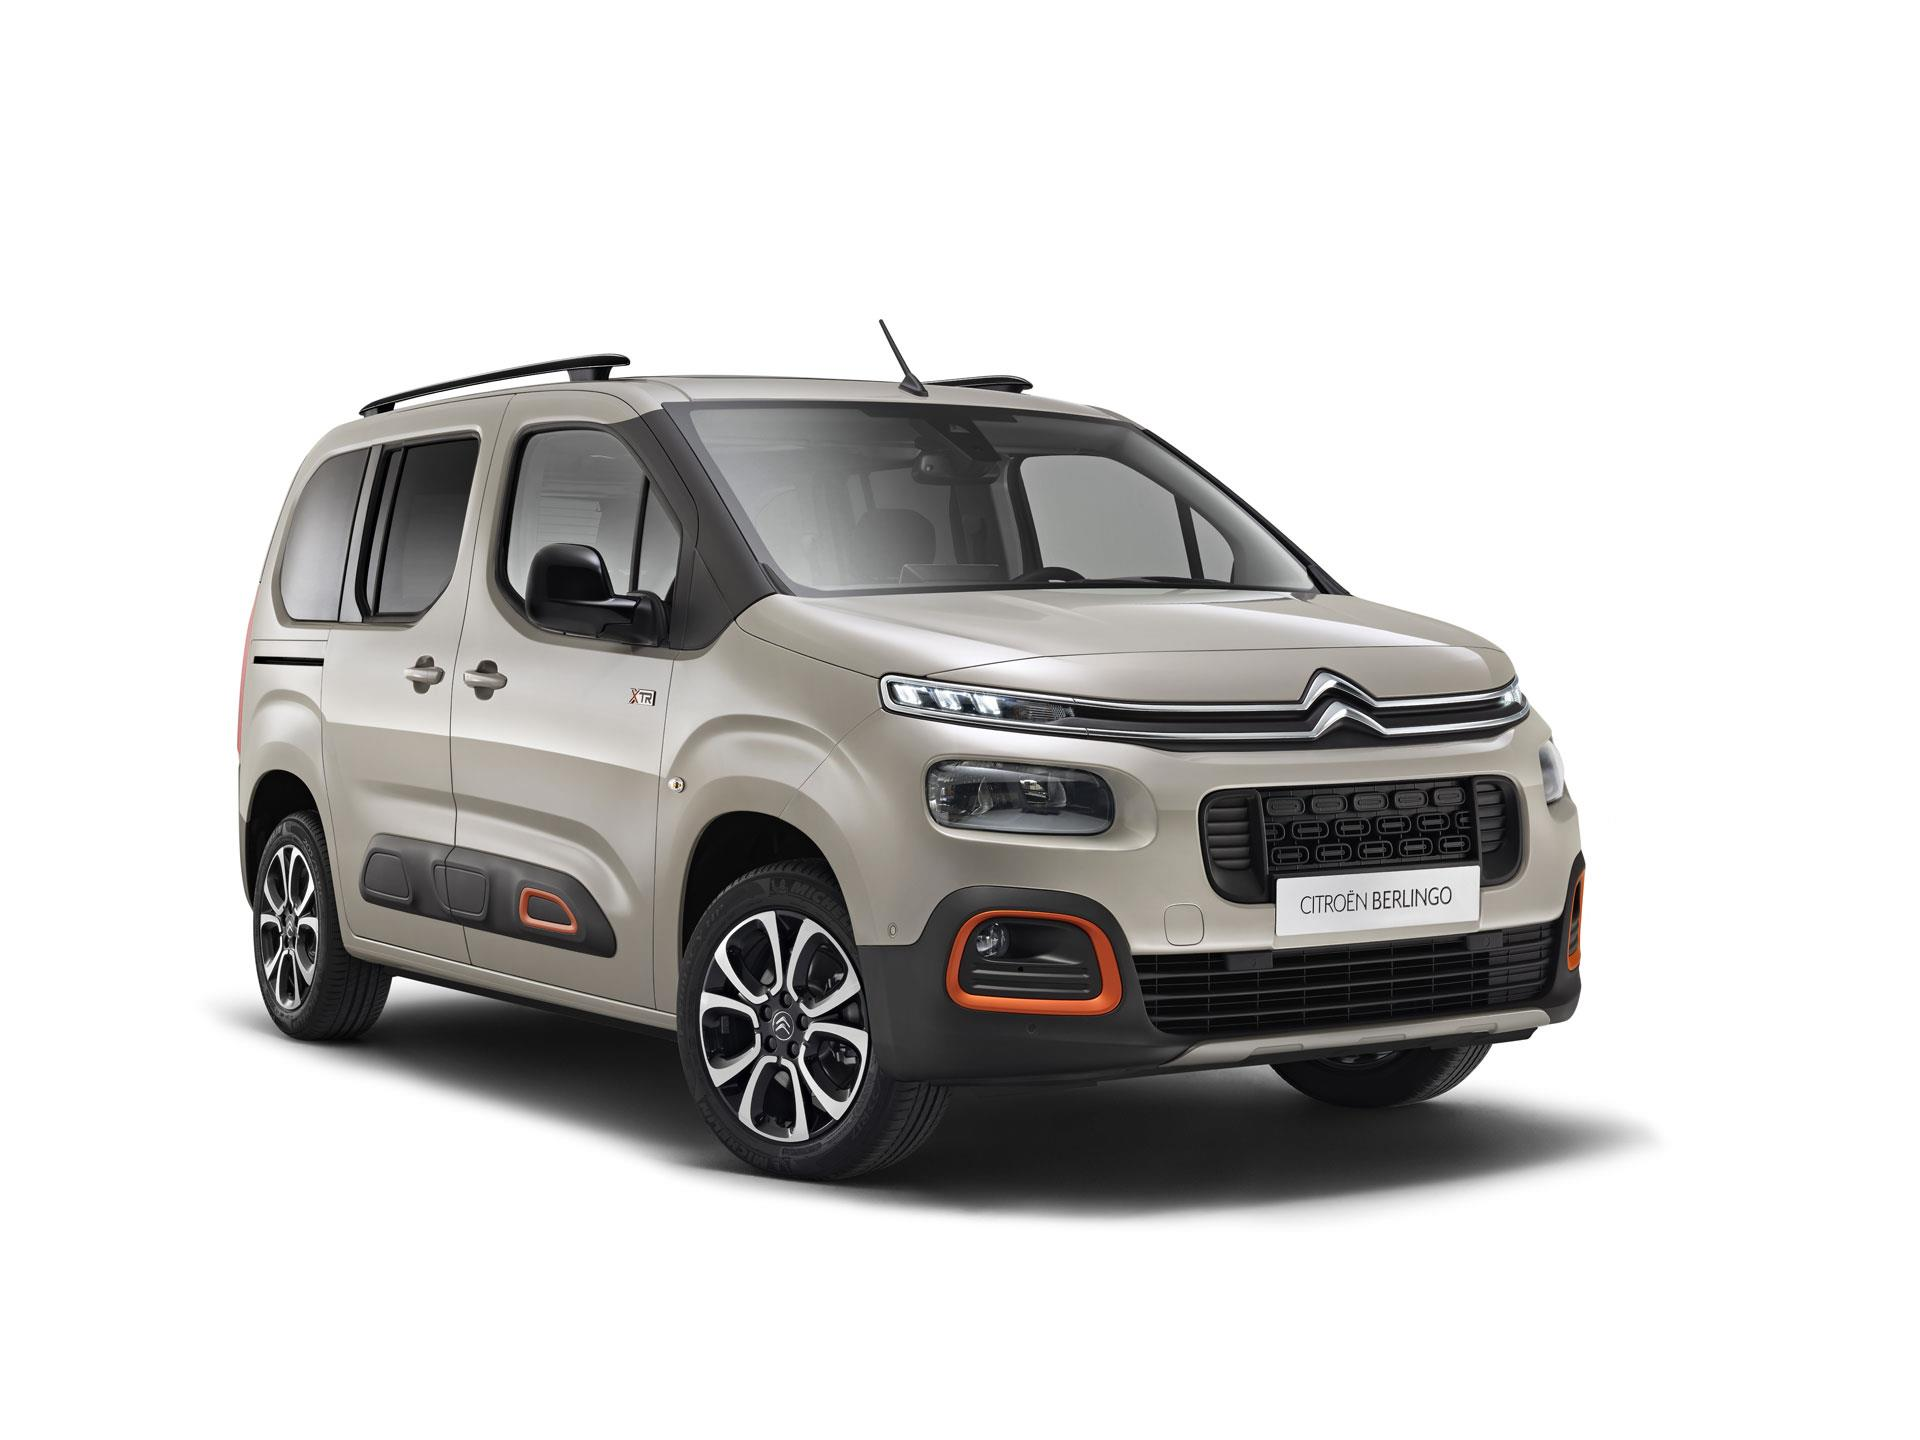 2018 citroen berlingo multispace news and information. Black Bedroom Furniture Sets. Home Design Ideas